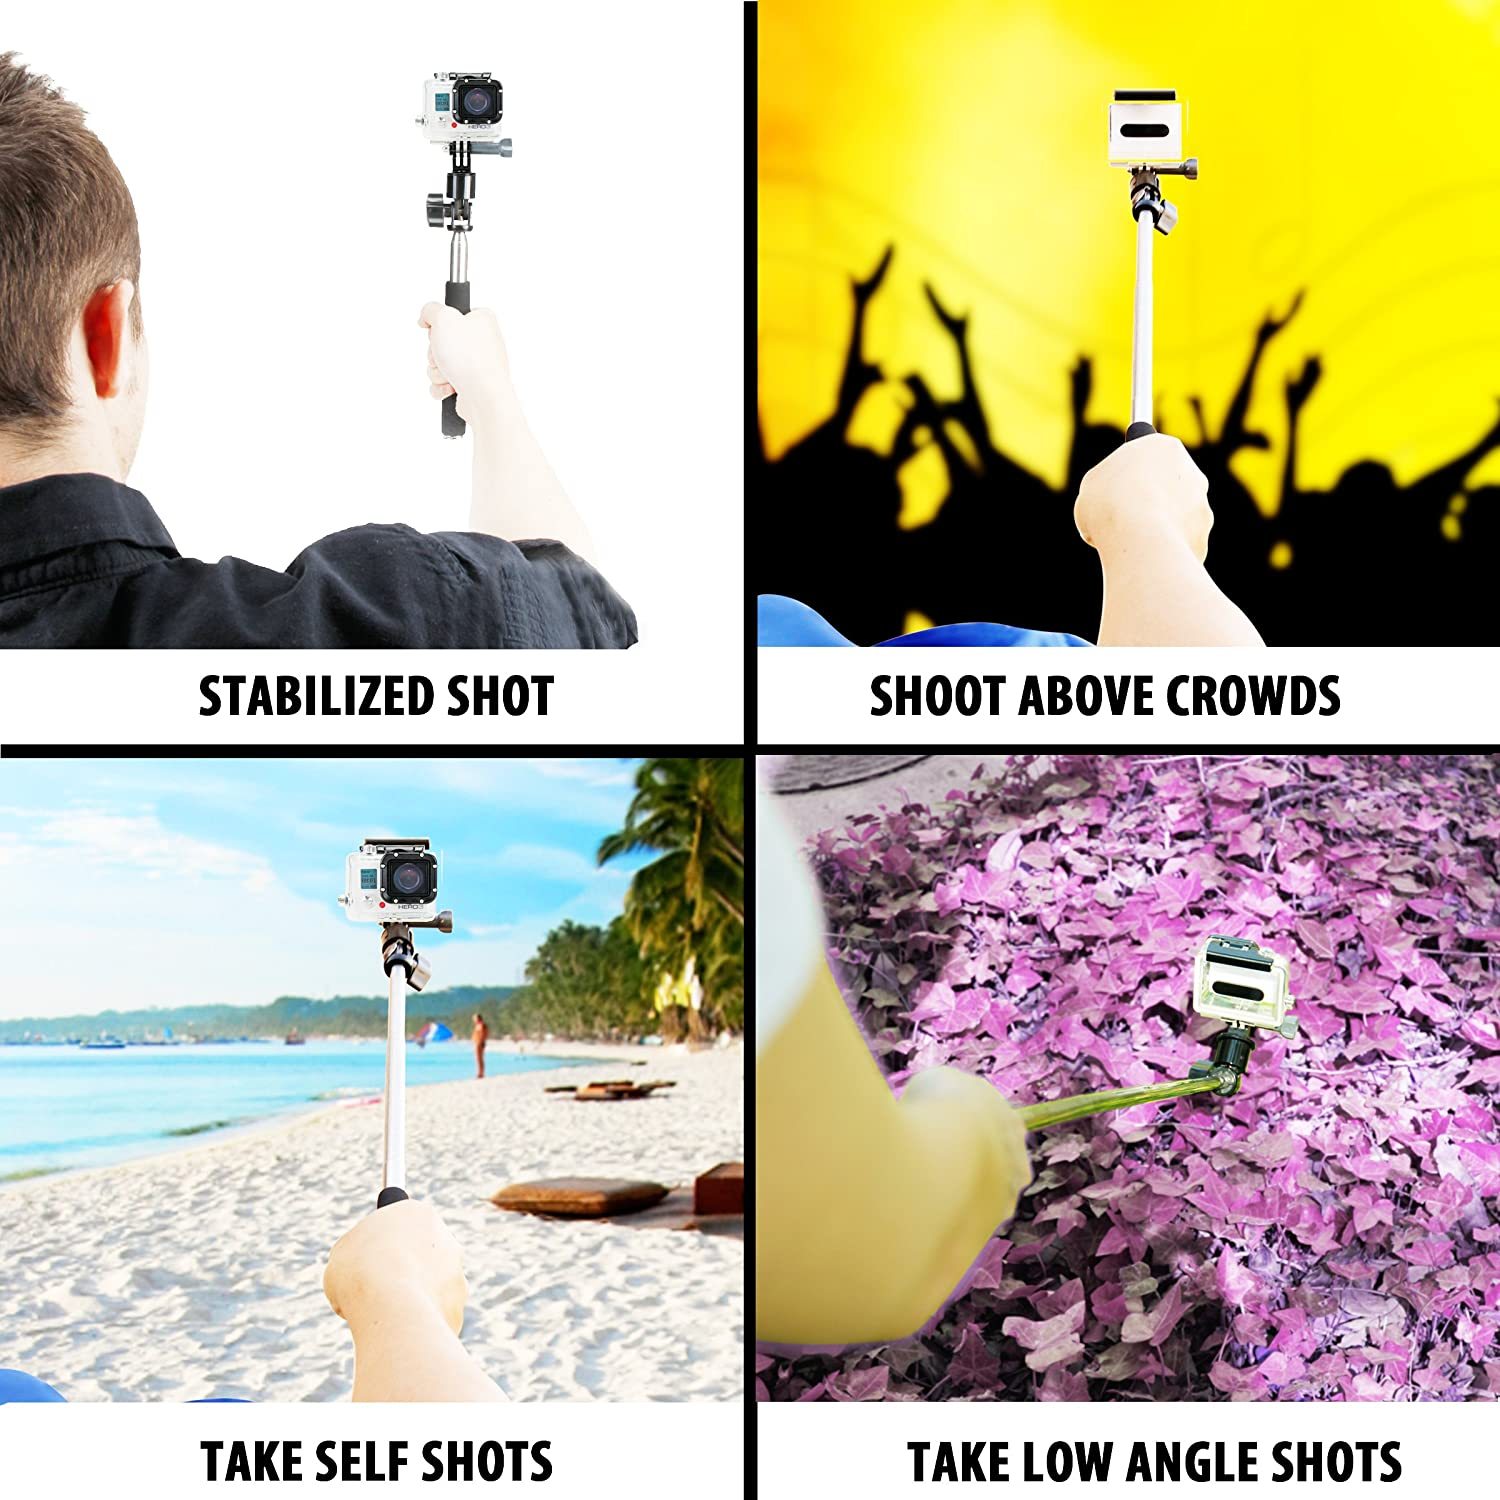 Amazon.com : USA Gear Action Cam Telescopic Monopod Selfie Stick with Metal Extension Pole Works with Garmin VIRB Ultra 30, Vivitar Action Cameras & More : ...